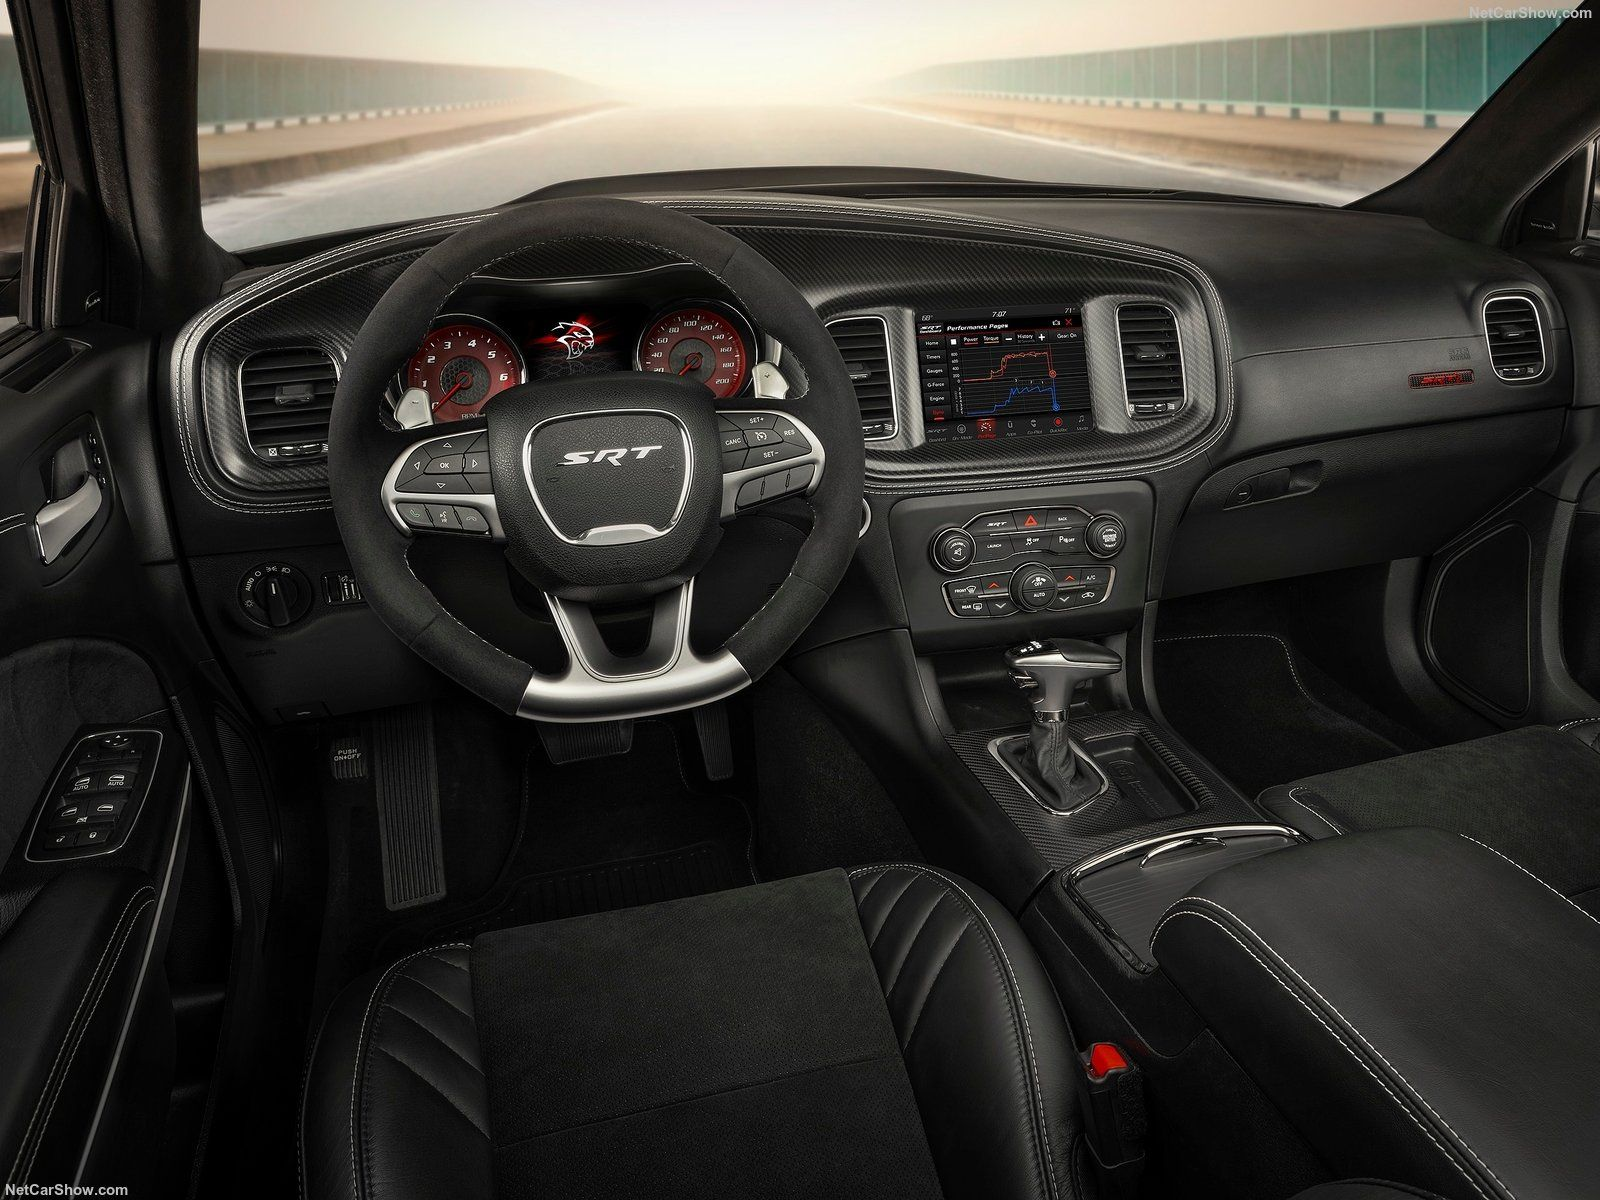 dodge charger scat pack interior Dodge Charger SRT Hellcat Widebody  Dodge, Dodge charger, Auto